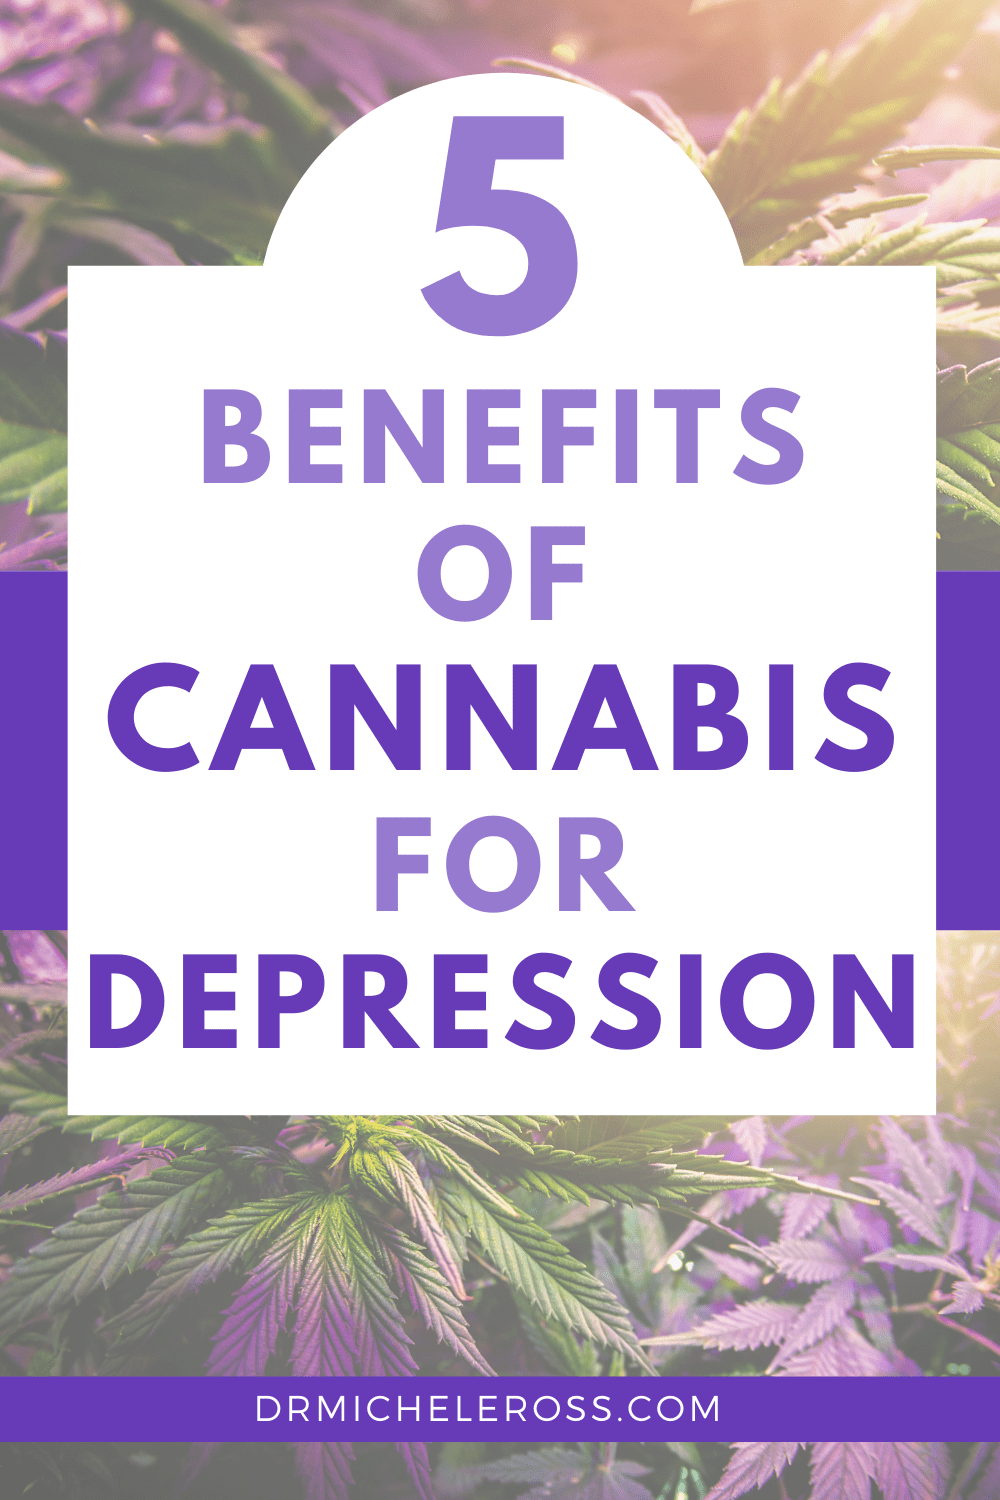 5 Benefits of Cannabis For Depression